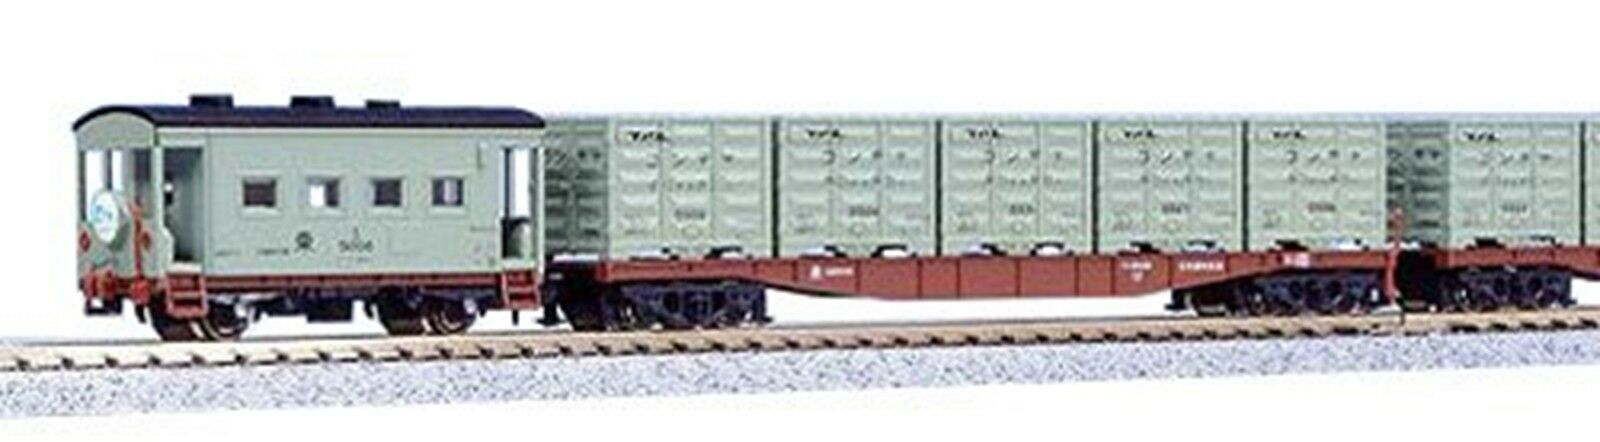 KATO N Scale Container Express Limited Issue Basic 9-Car Set 10-489 Railr new